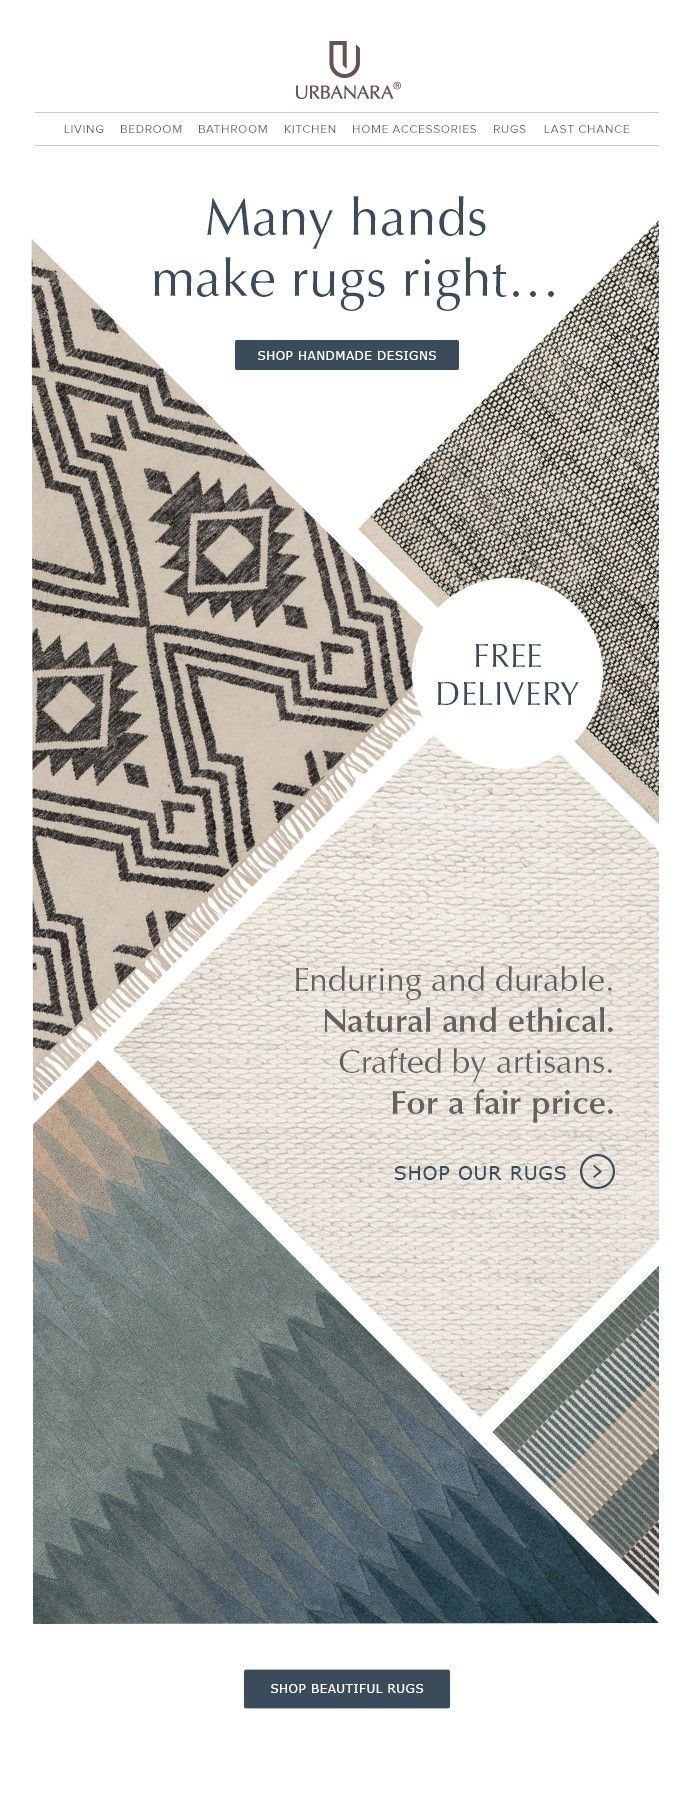 URBANARA newsletter template for rugs and runners. Follows us for tips and inspiration for your home decor, interior or fashion newsletters.